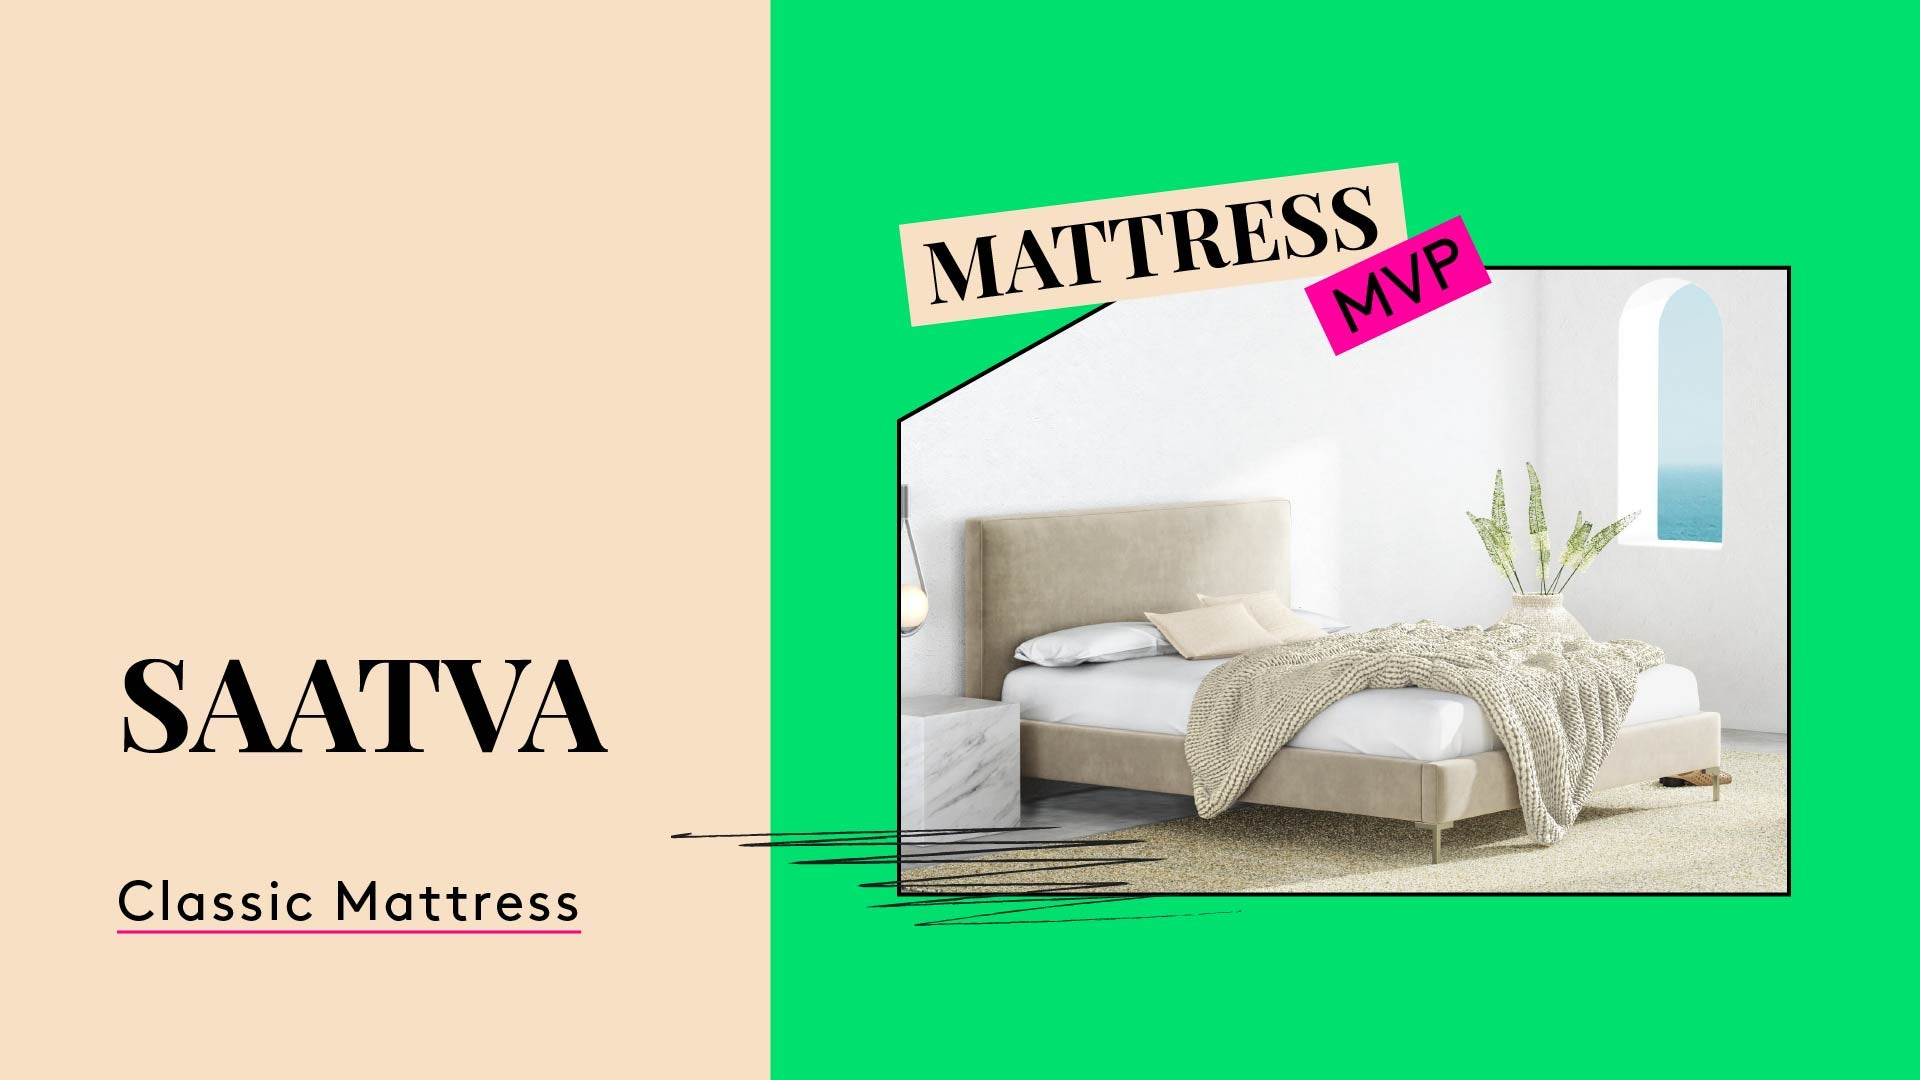 Mattress MVP. This is a photo of the Saatva Classic Mattress.